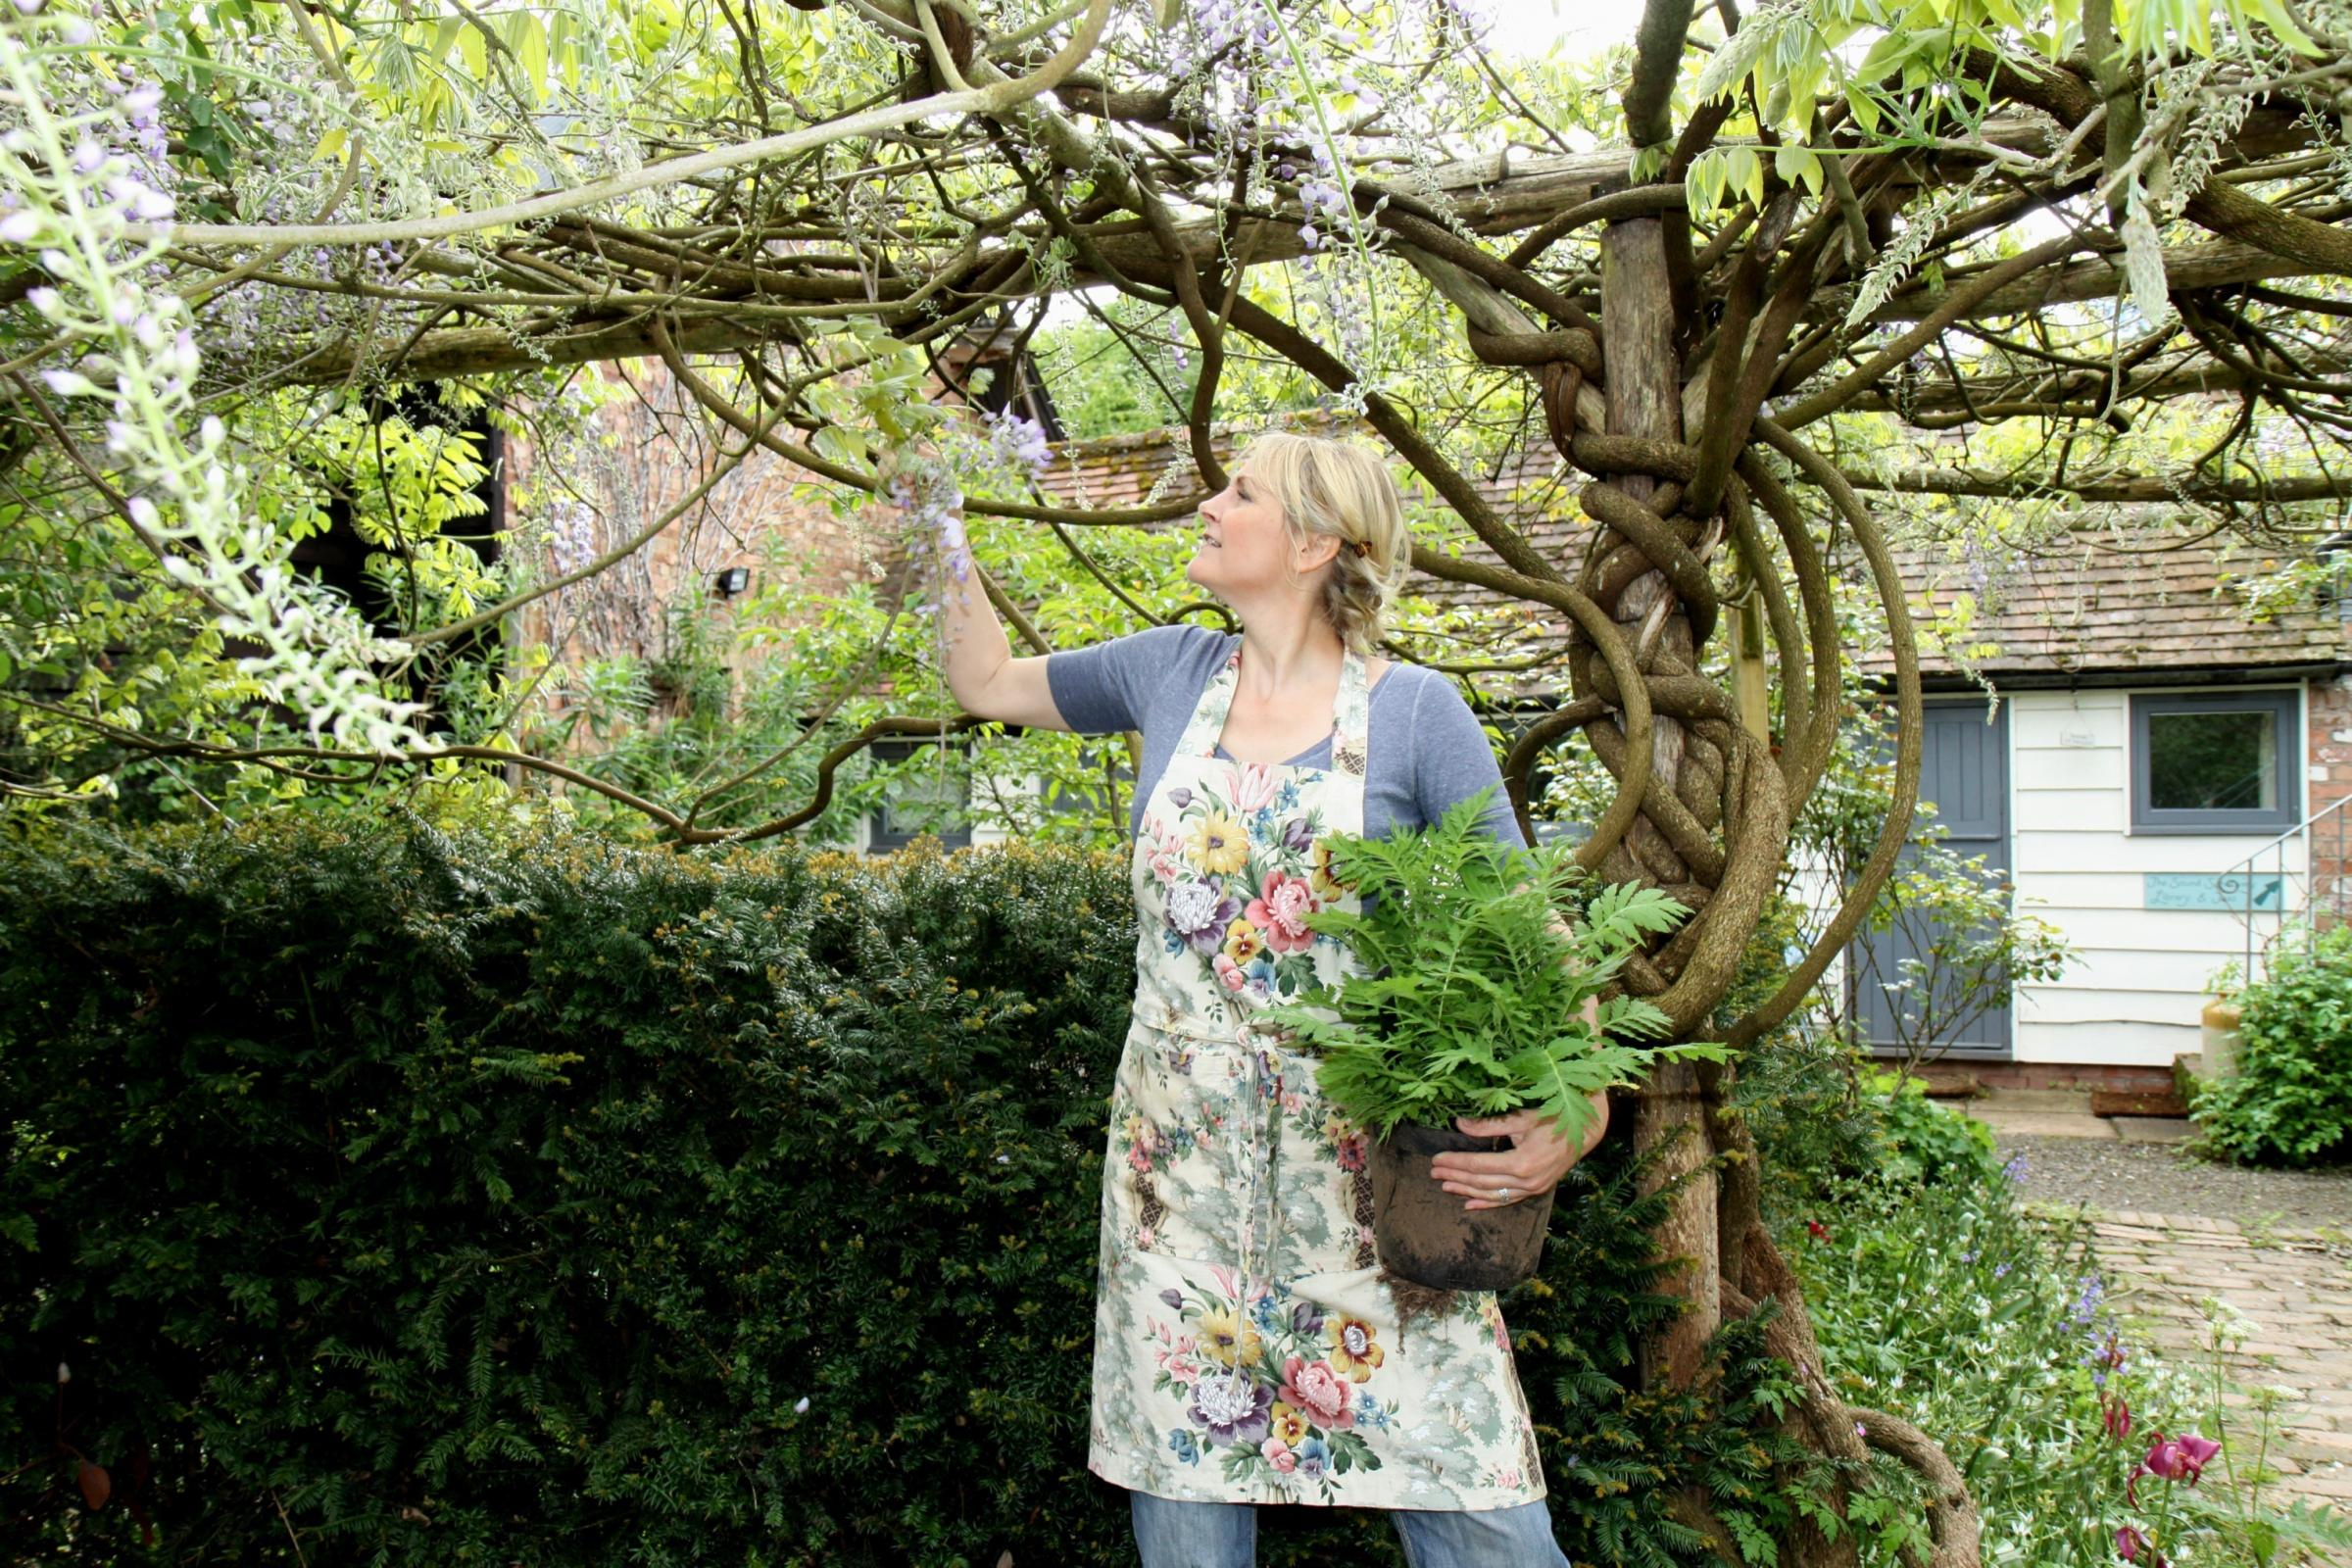 Sarah Wint examines the wisteria at Heartfelt Garden. Picture by Keith Gluyas.